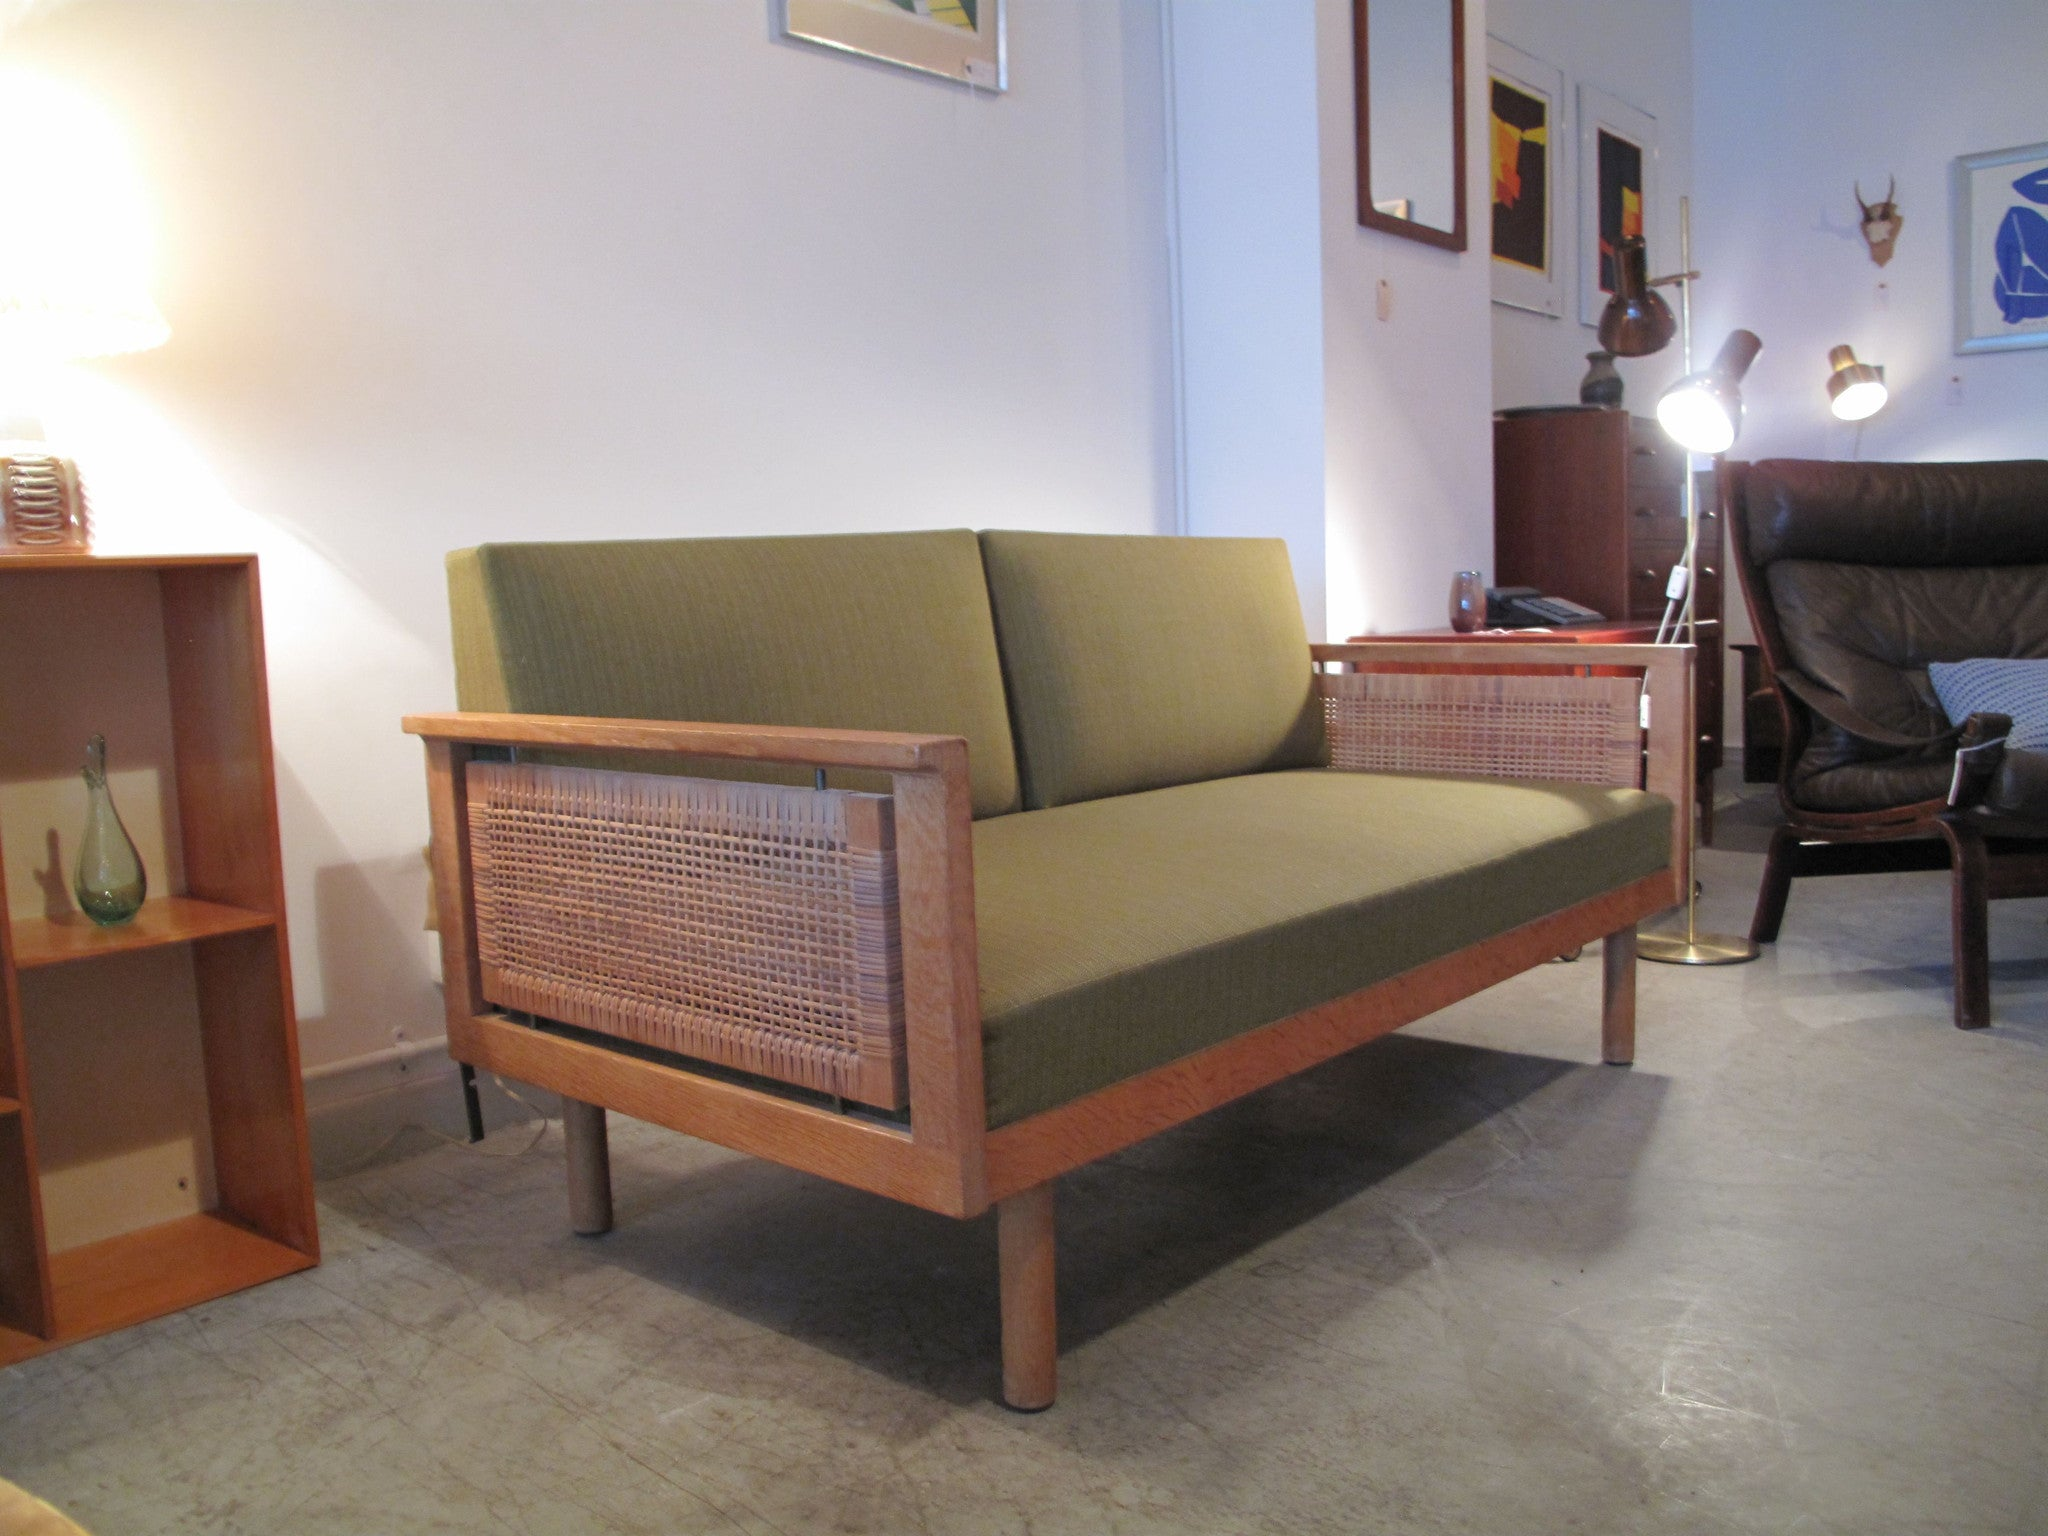 Sofabed with rattan sides